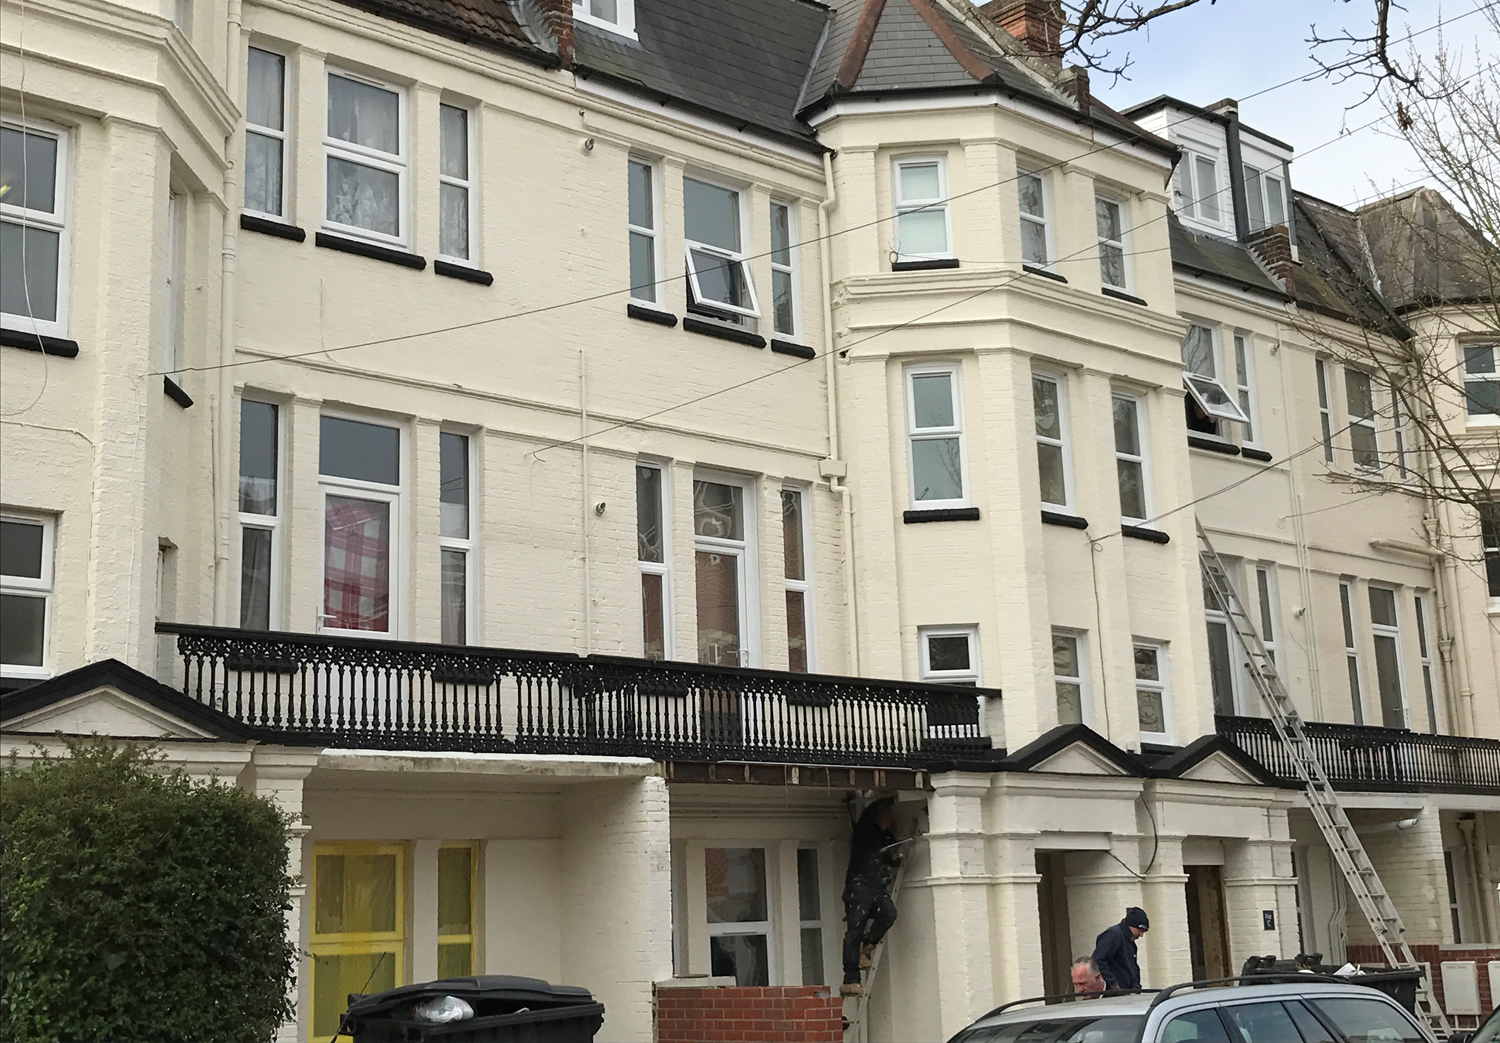 Westbourne. Completed. Conversion of HMO building into 11 self contained studio and 1 bedroom flats.